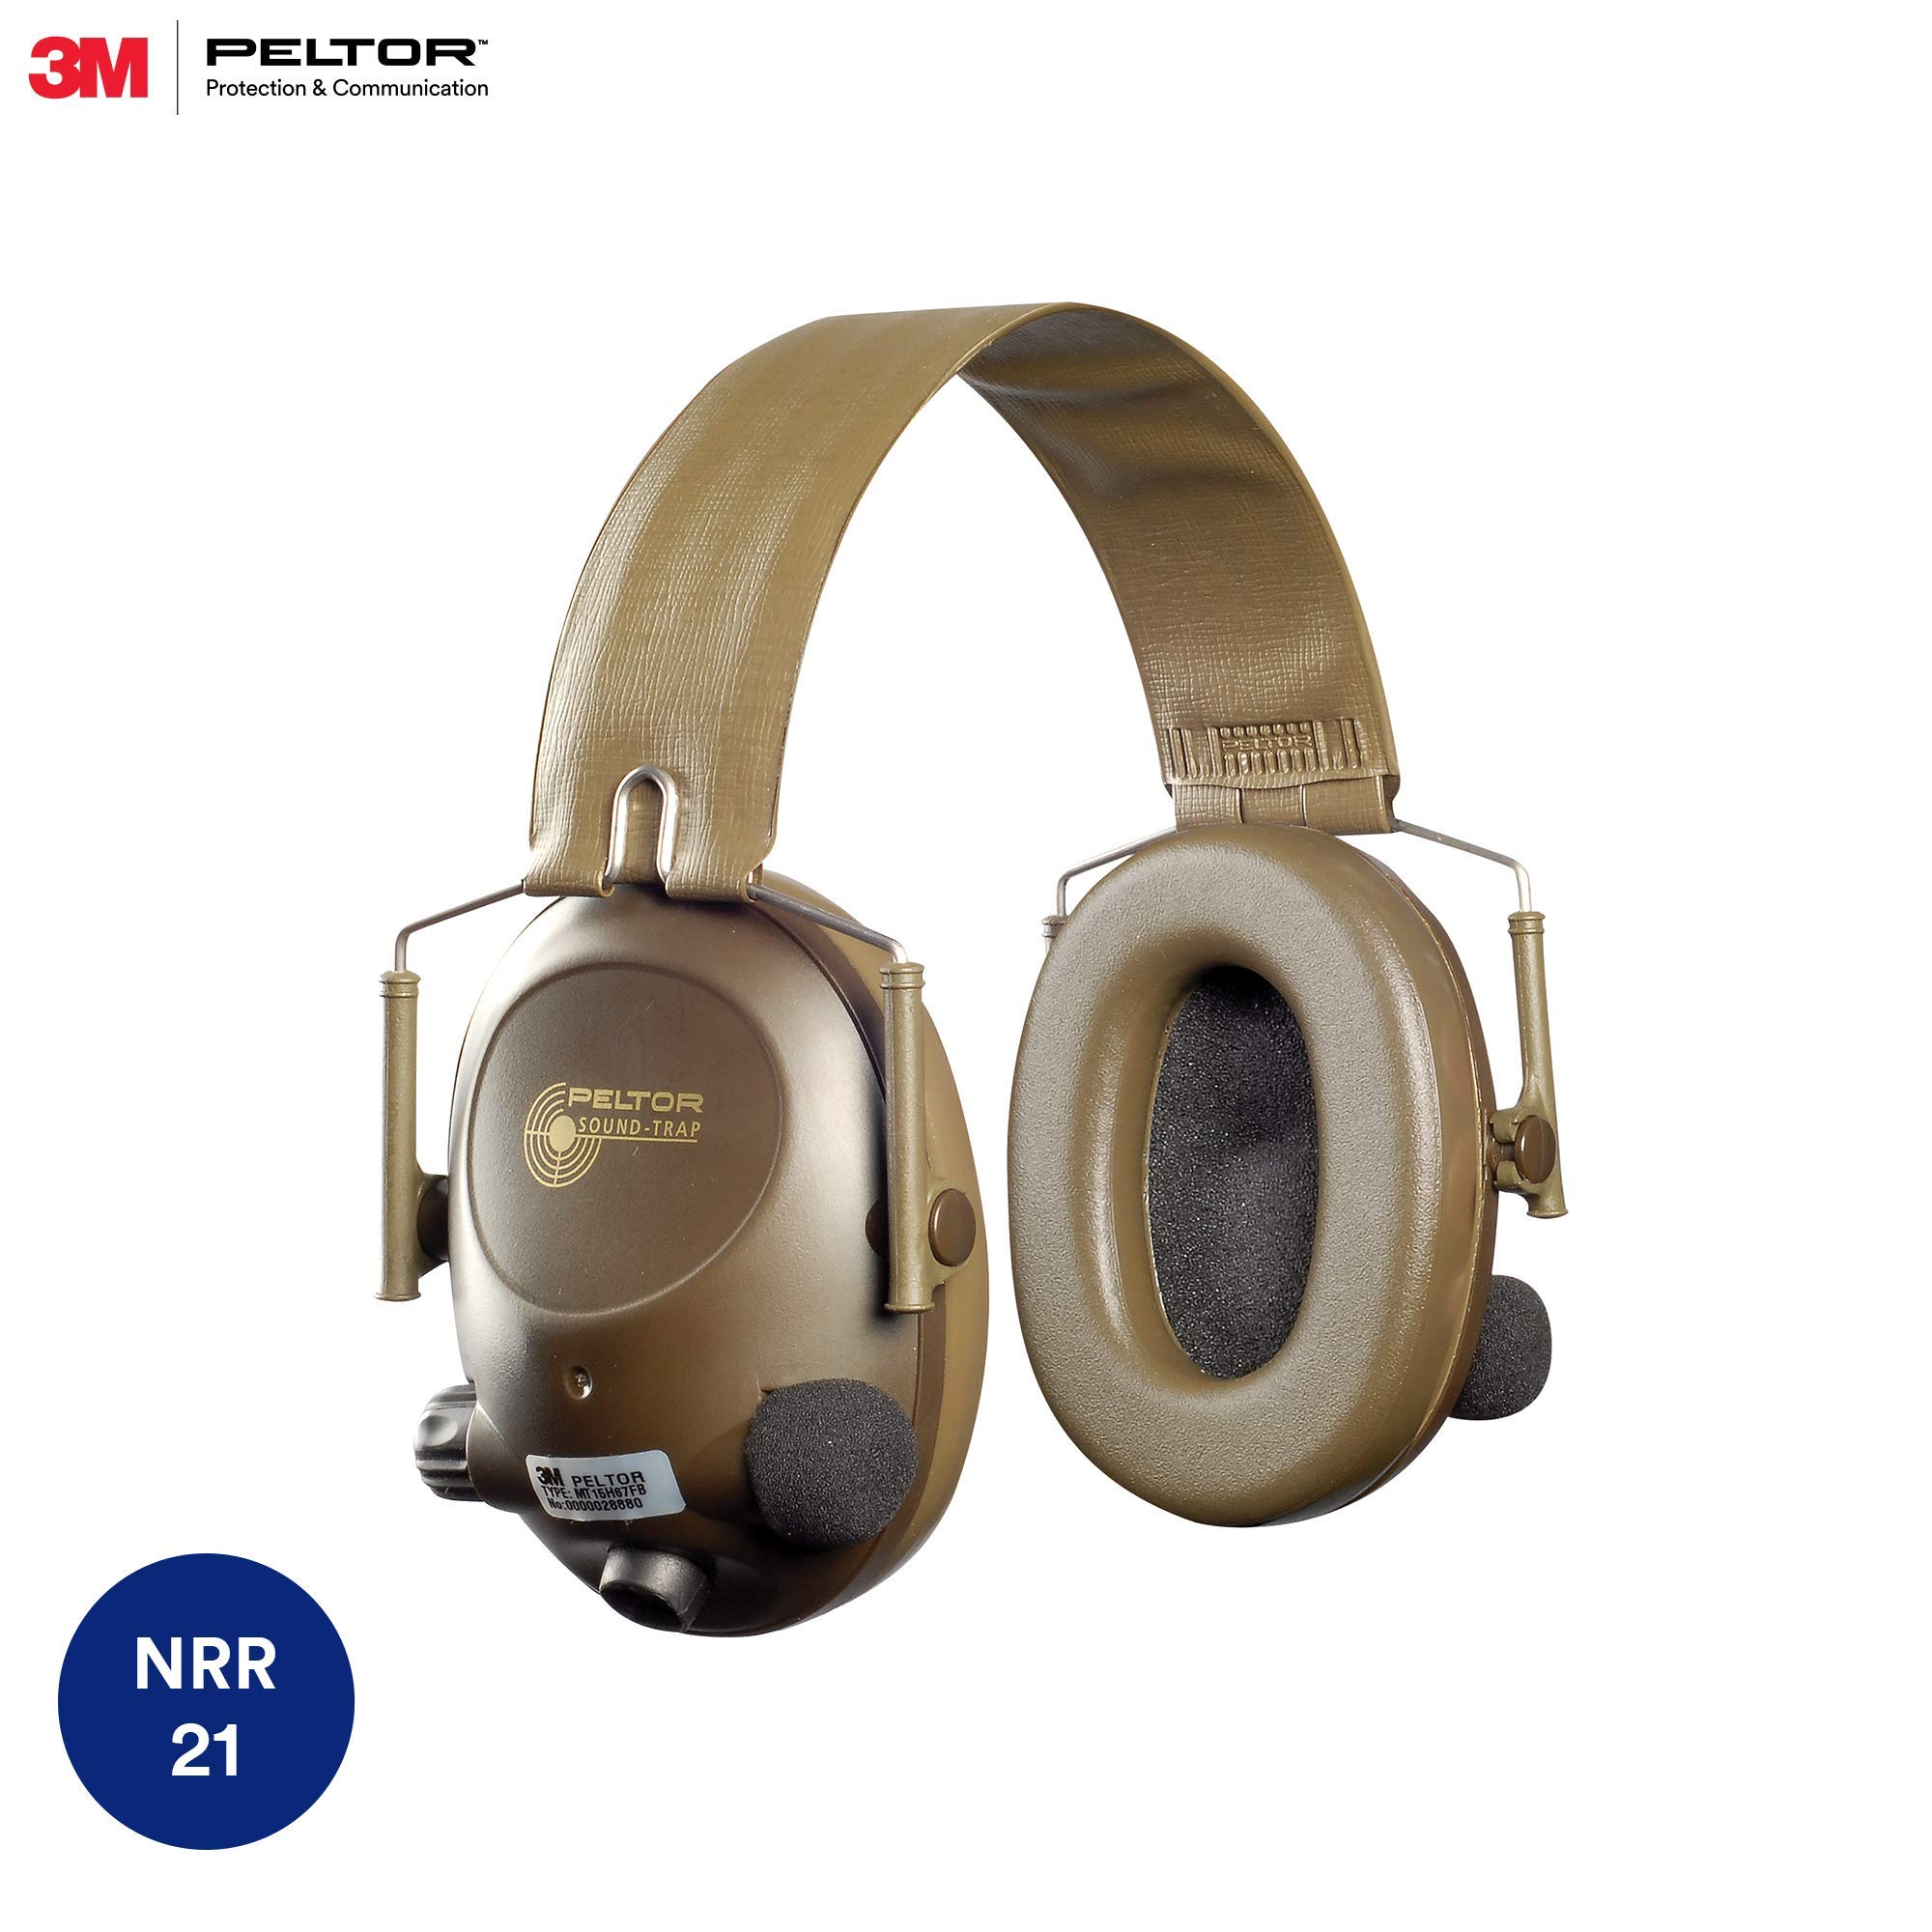 3M Peltor Tactical 6-S Slim Line Electronic Headset with Audio Input Jack, Olive Green, Hearing Protection, Ear Protection, NRR 20 dB, Great for hunters and shooters by 3M